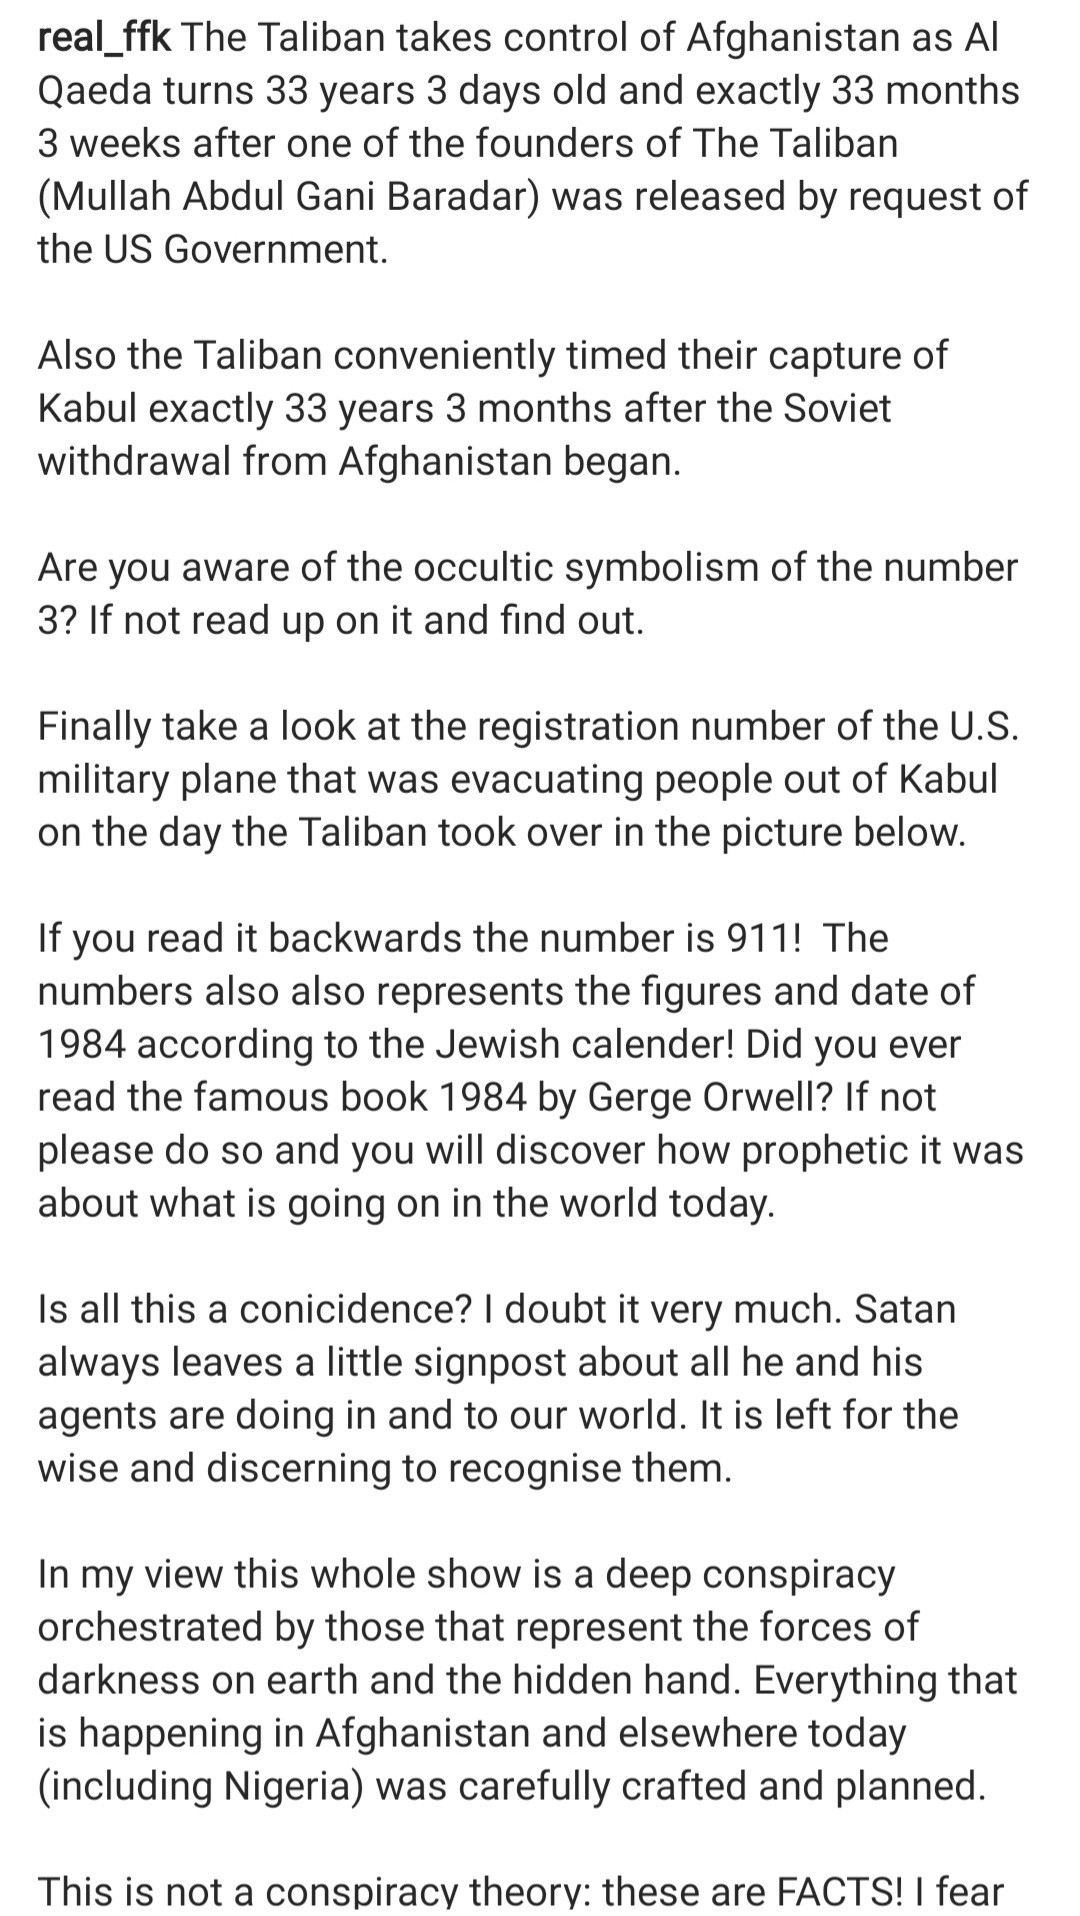 FFK shares conspiracy theory about the symbolism of the day Taliban overthrew the Afghanistan government